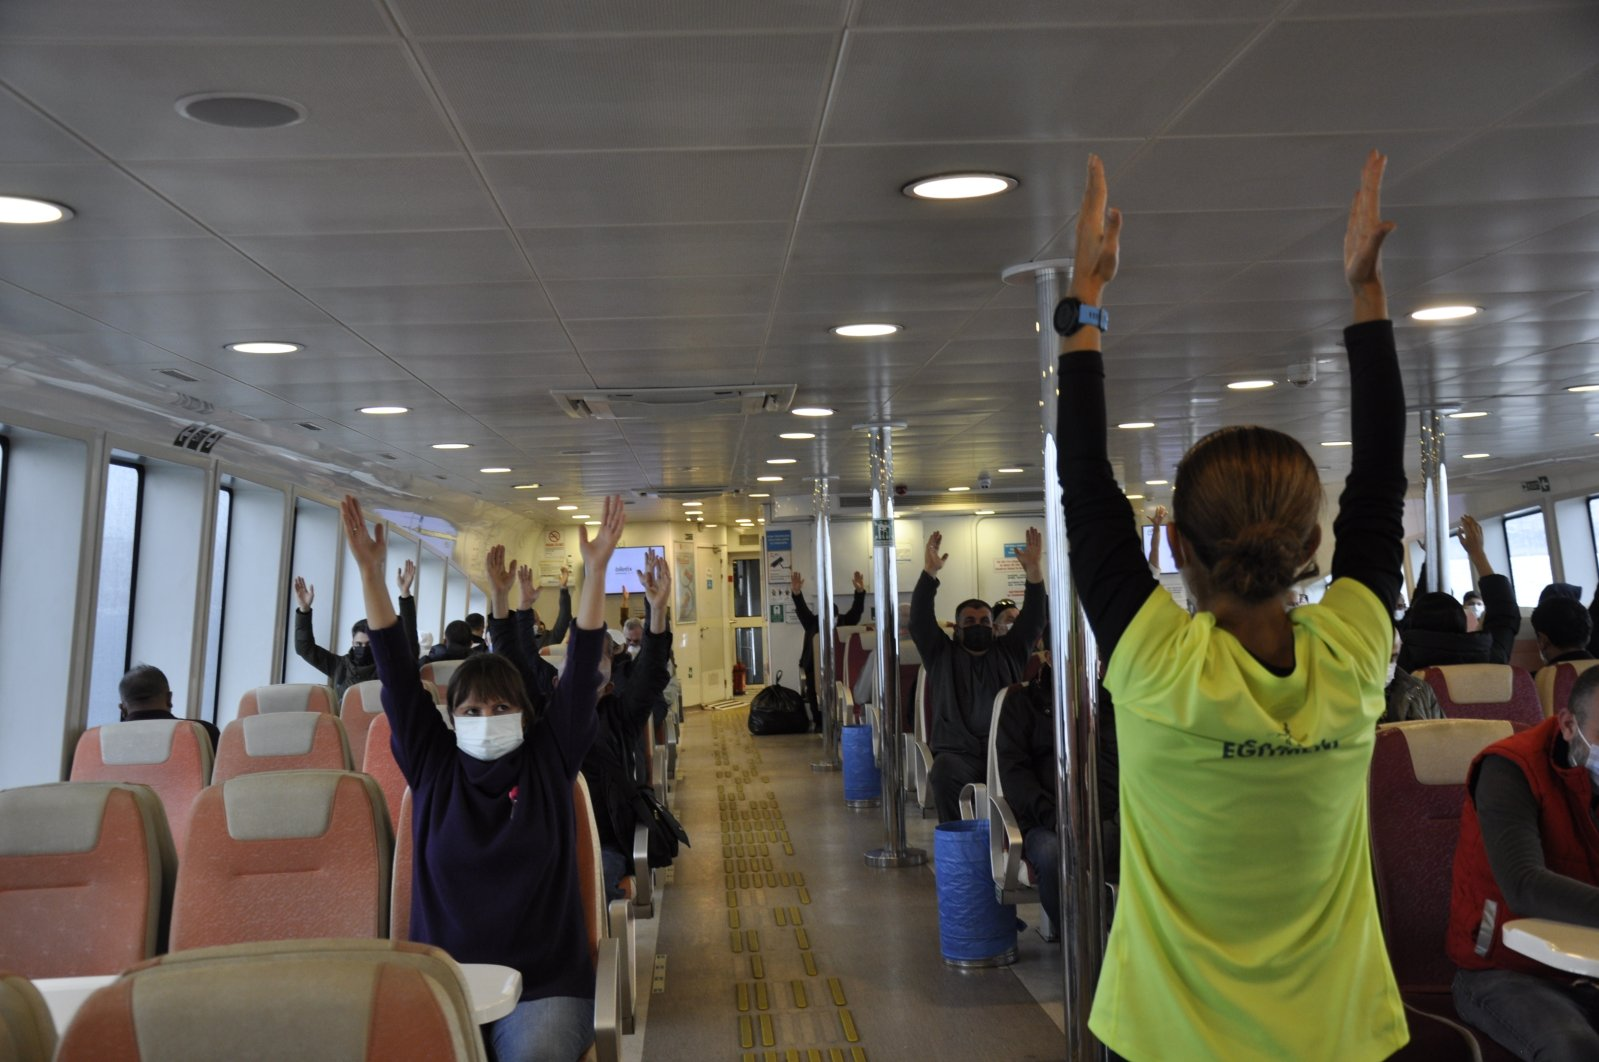 An instructor shows exercise moves to passengers on a ferry, in Istanbul, Turkey, Nov. 20, 2020. (Courtesy of IBB)